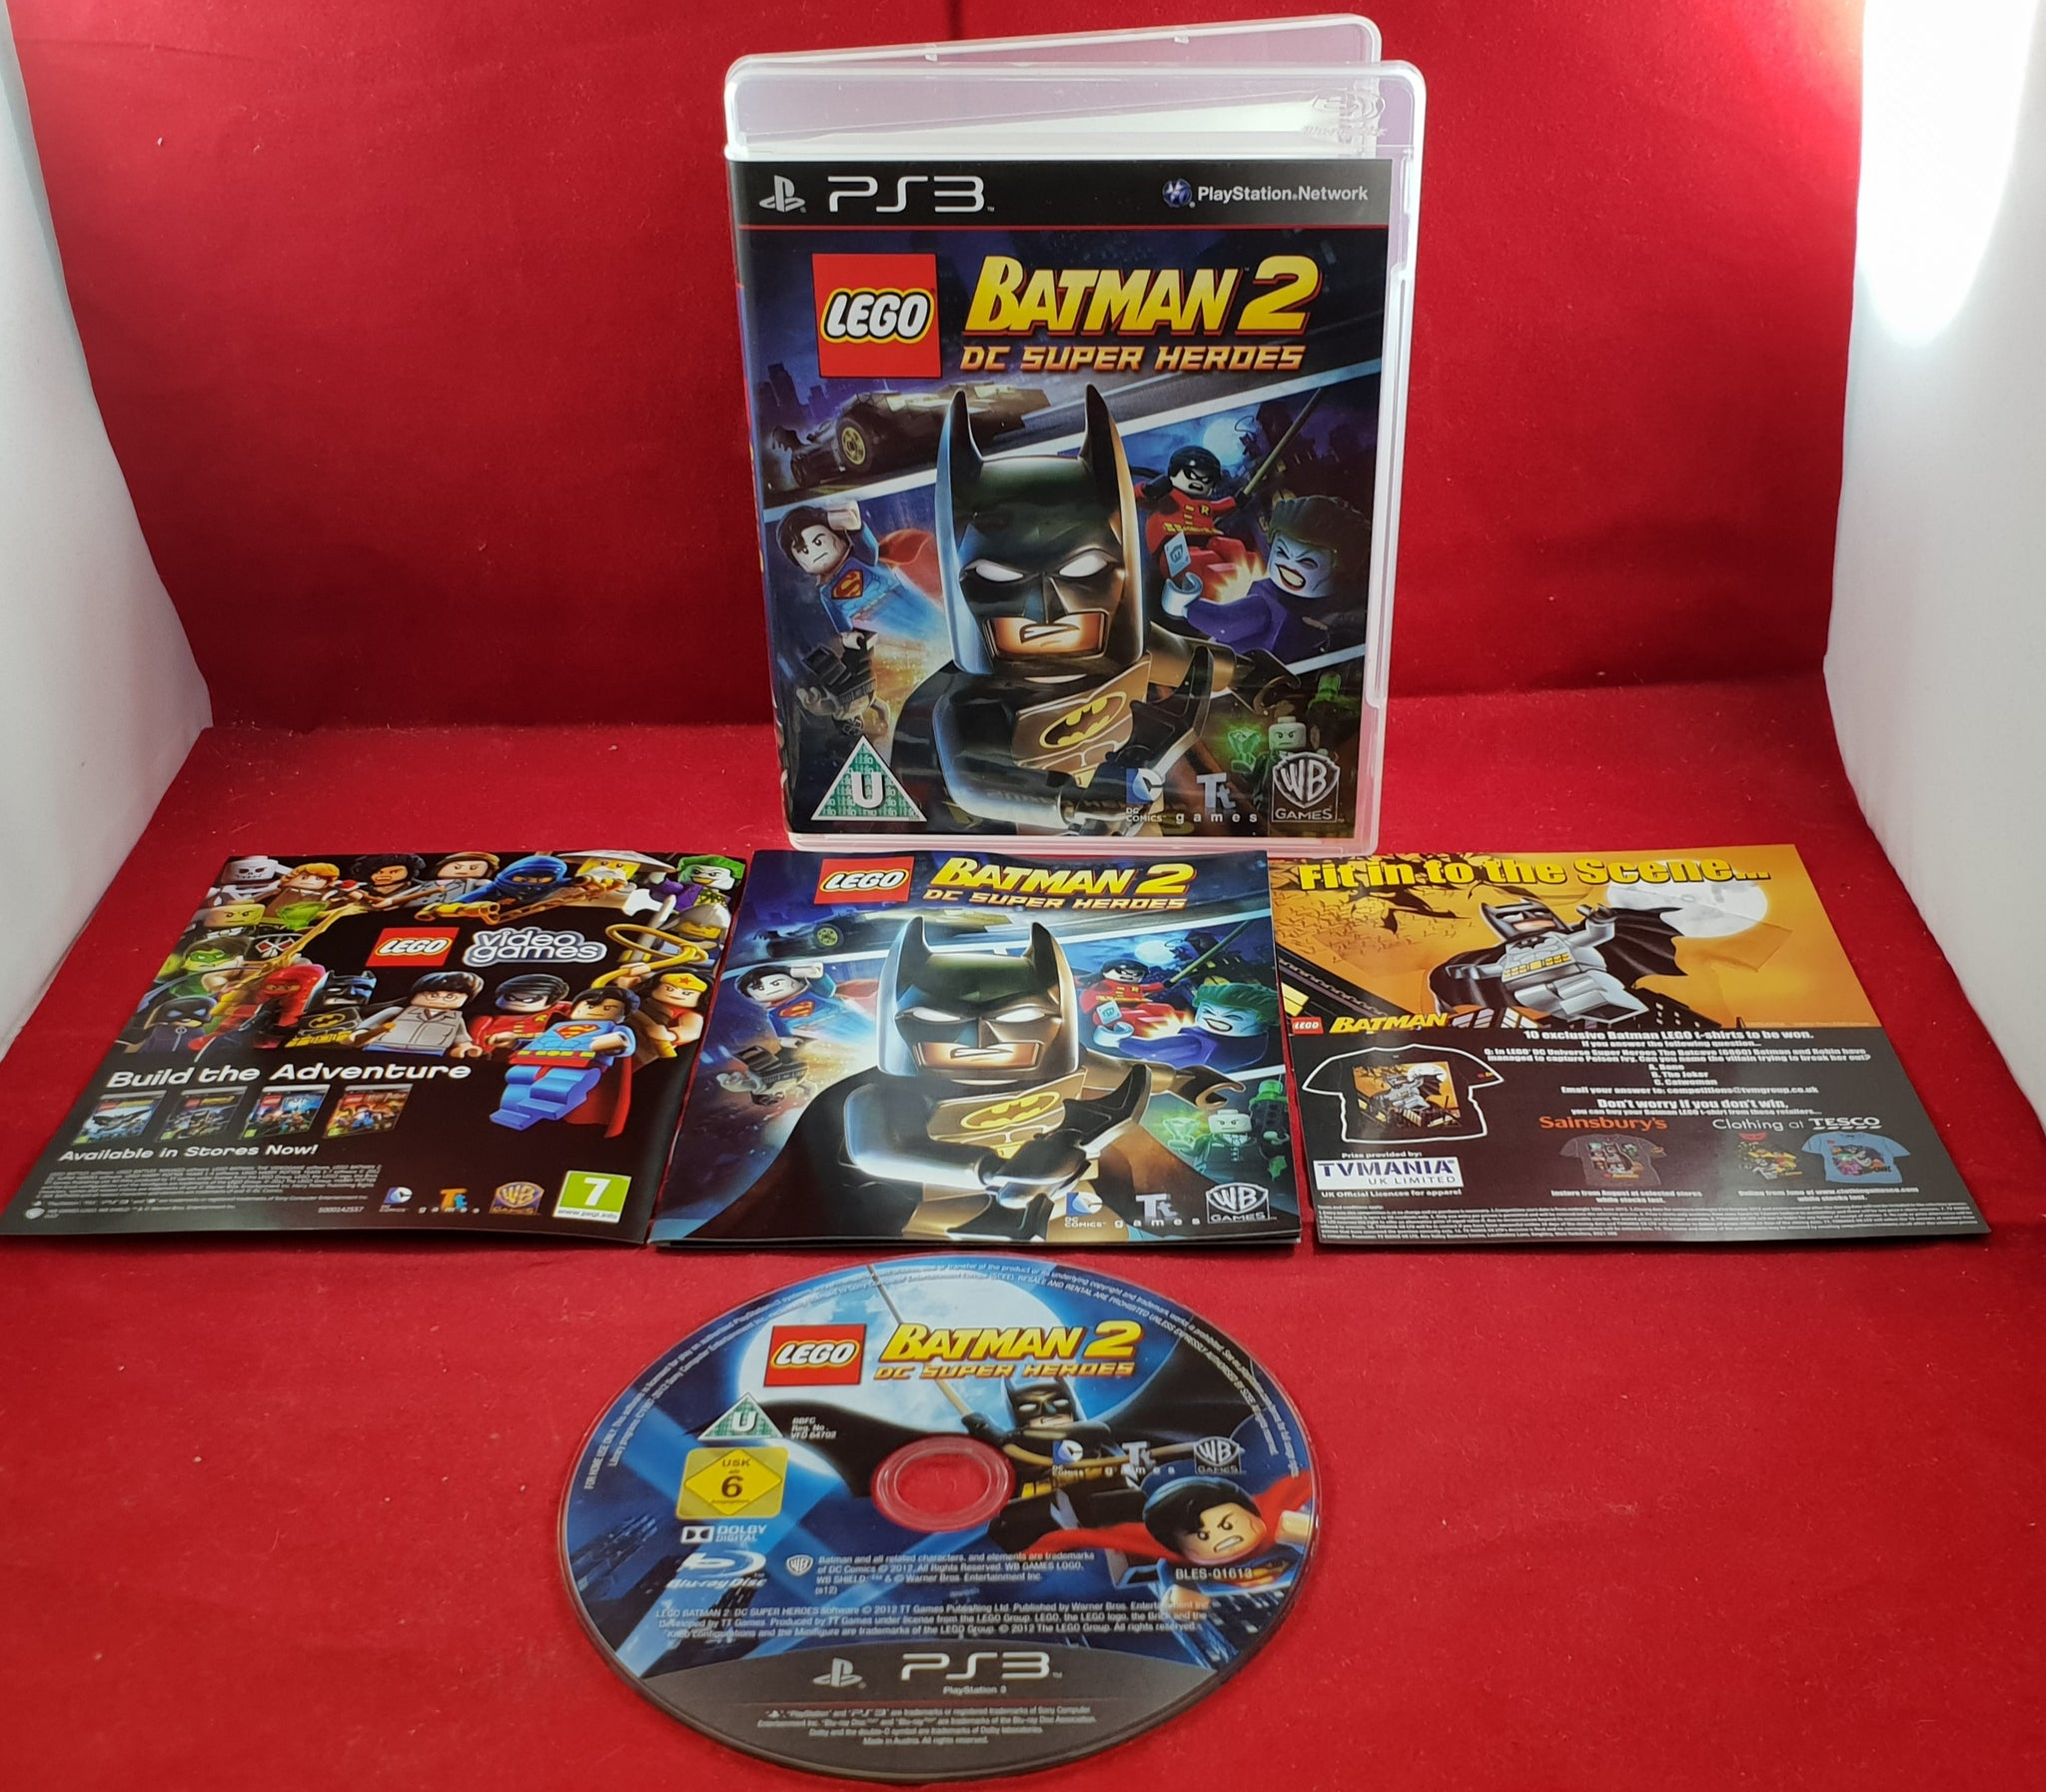 Lego Batman 2 Dc Super Heroes Ps3 Sony Playstation 3 Game Retro Gamer Heaven